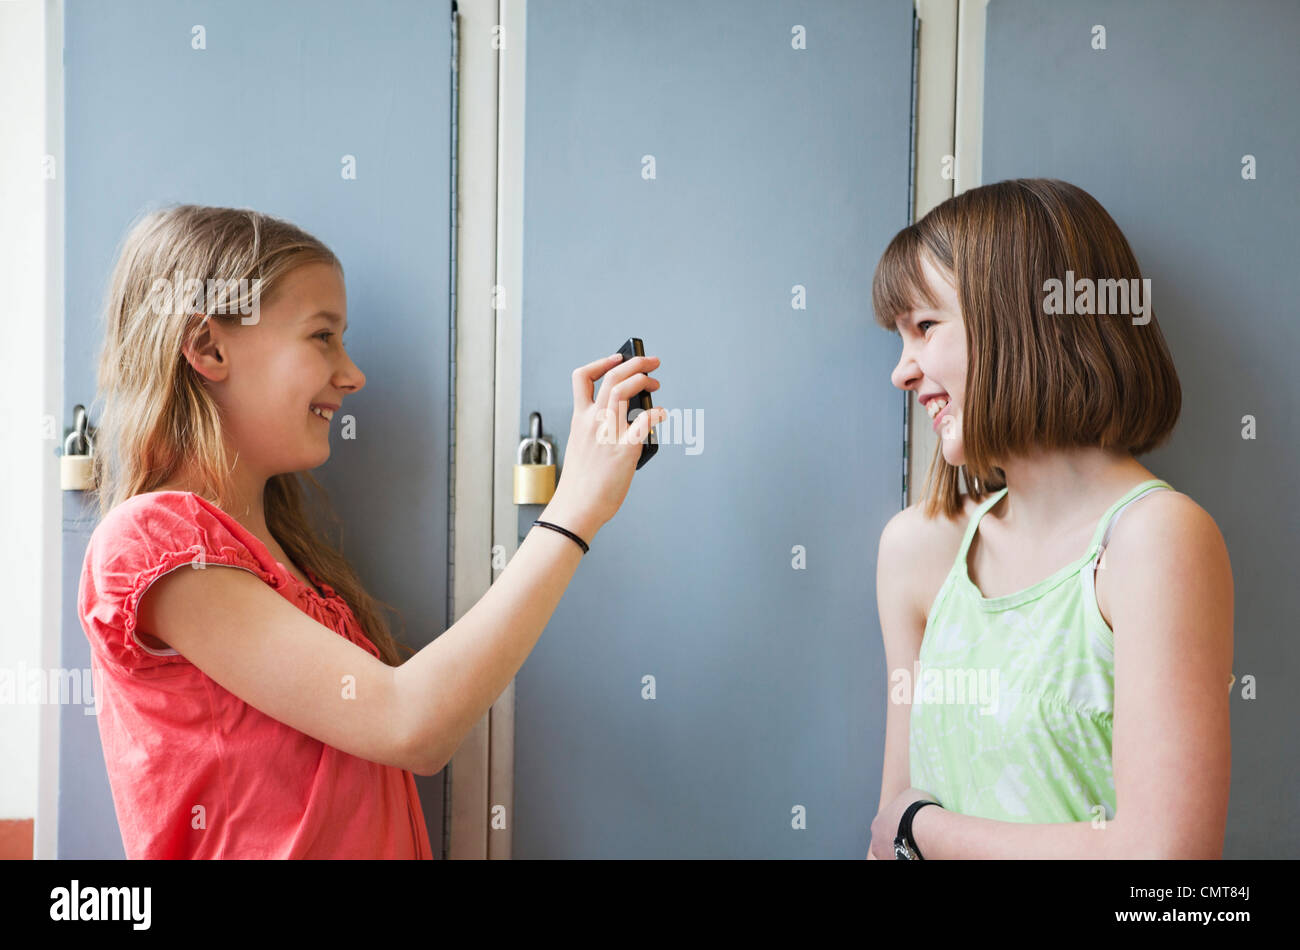 Girl showing something to her friend on mobile phone - Stock Image